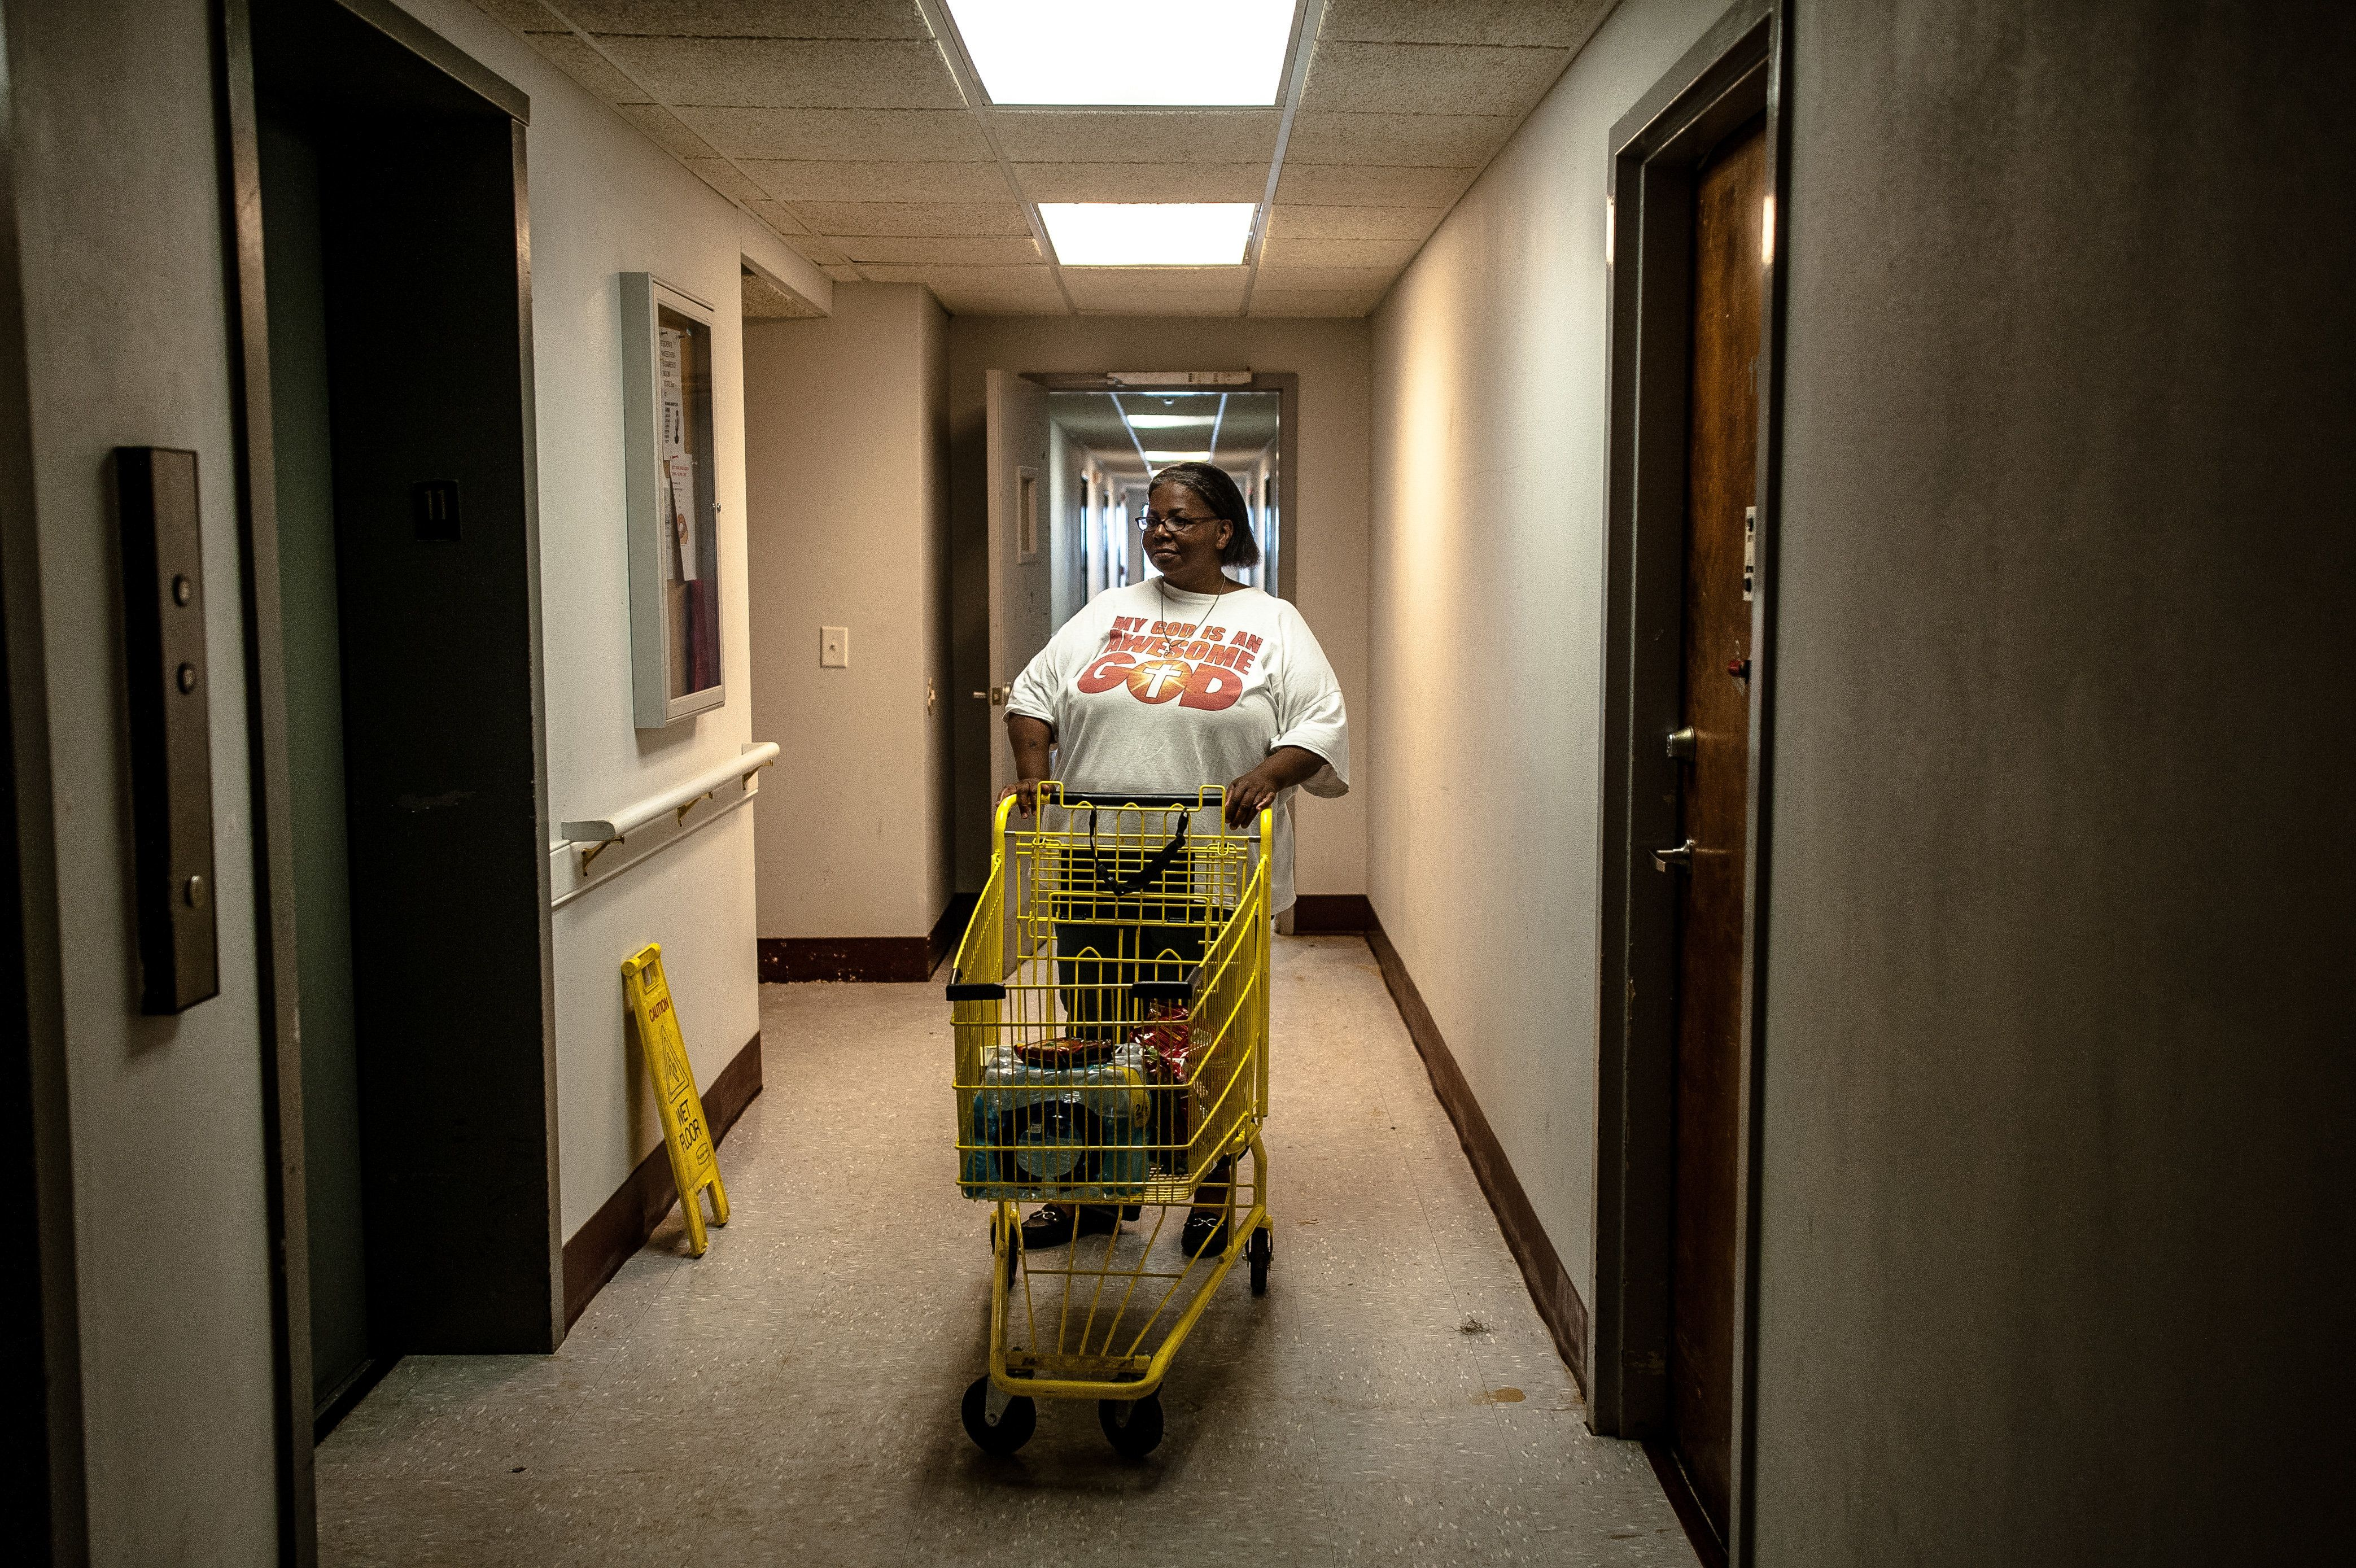 Debbie Williams brings food and water brought in by the Wilmington Police Department to her aparment on the eleventh flood of the building.